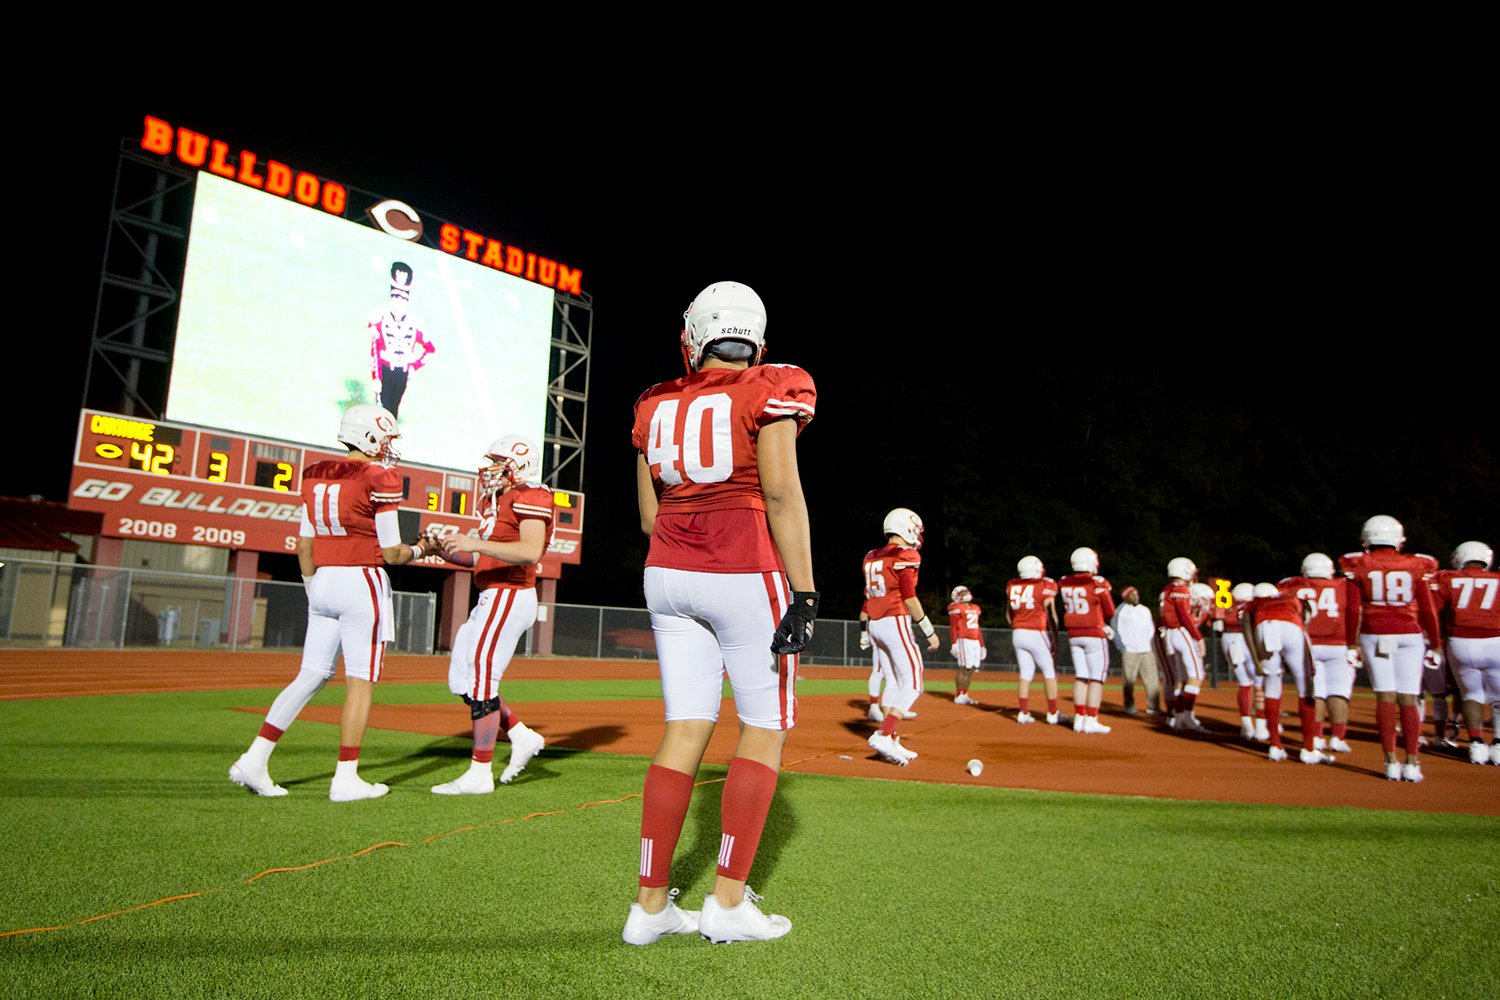 Carthage ISD voters agreed to a tax hike to pay for this $750,000 Jumbotron.